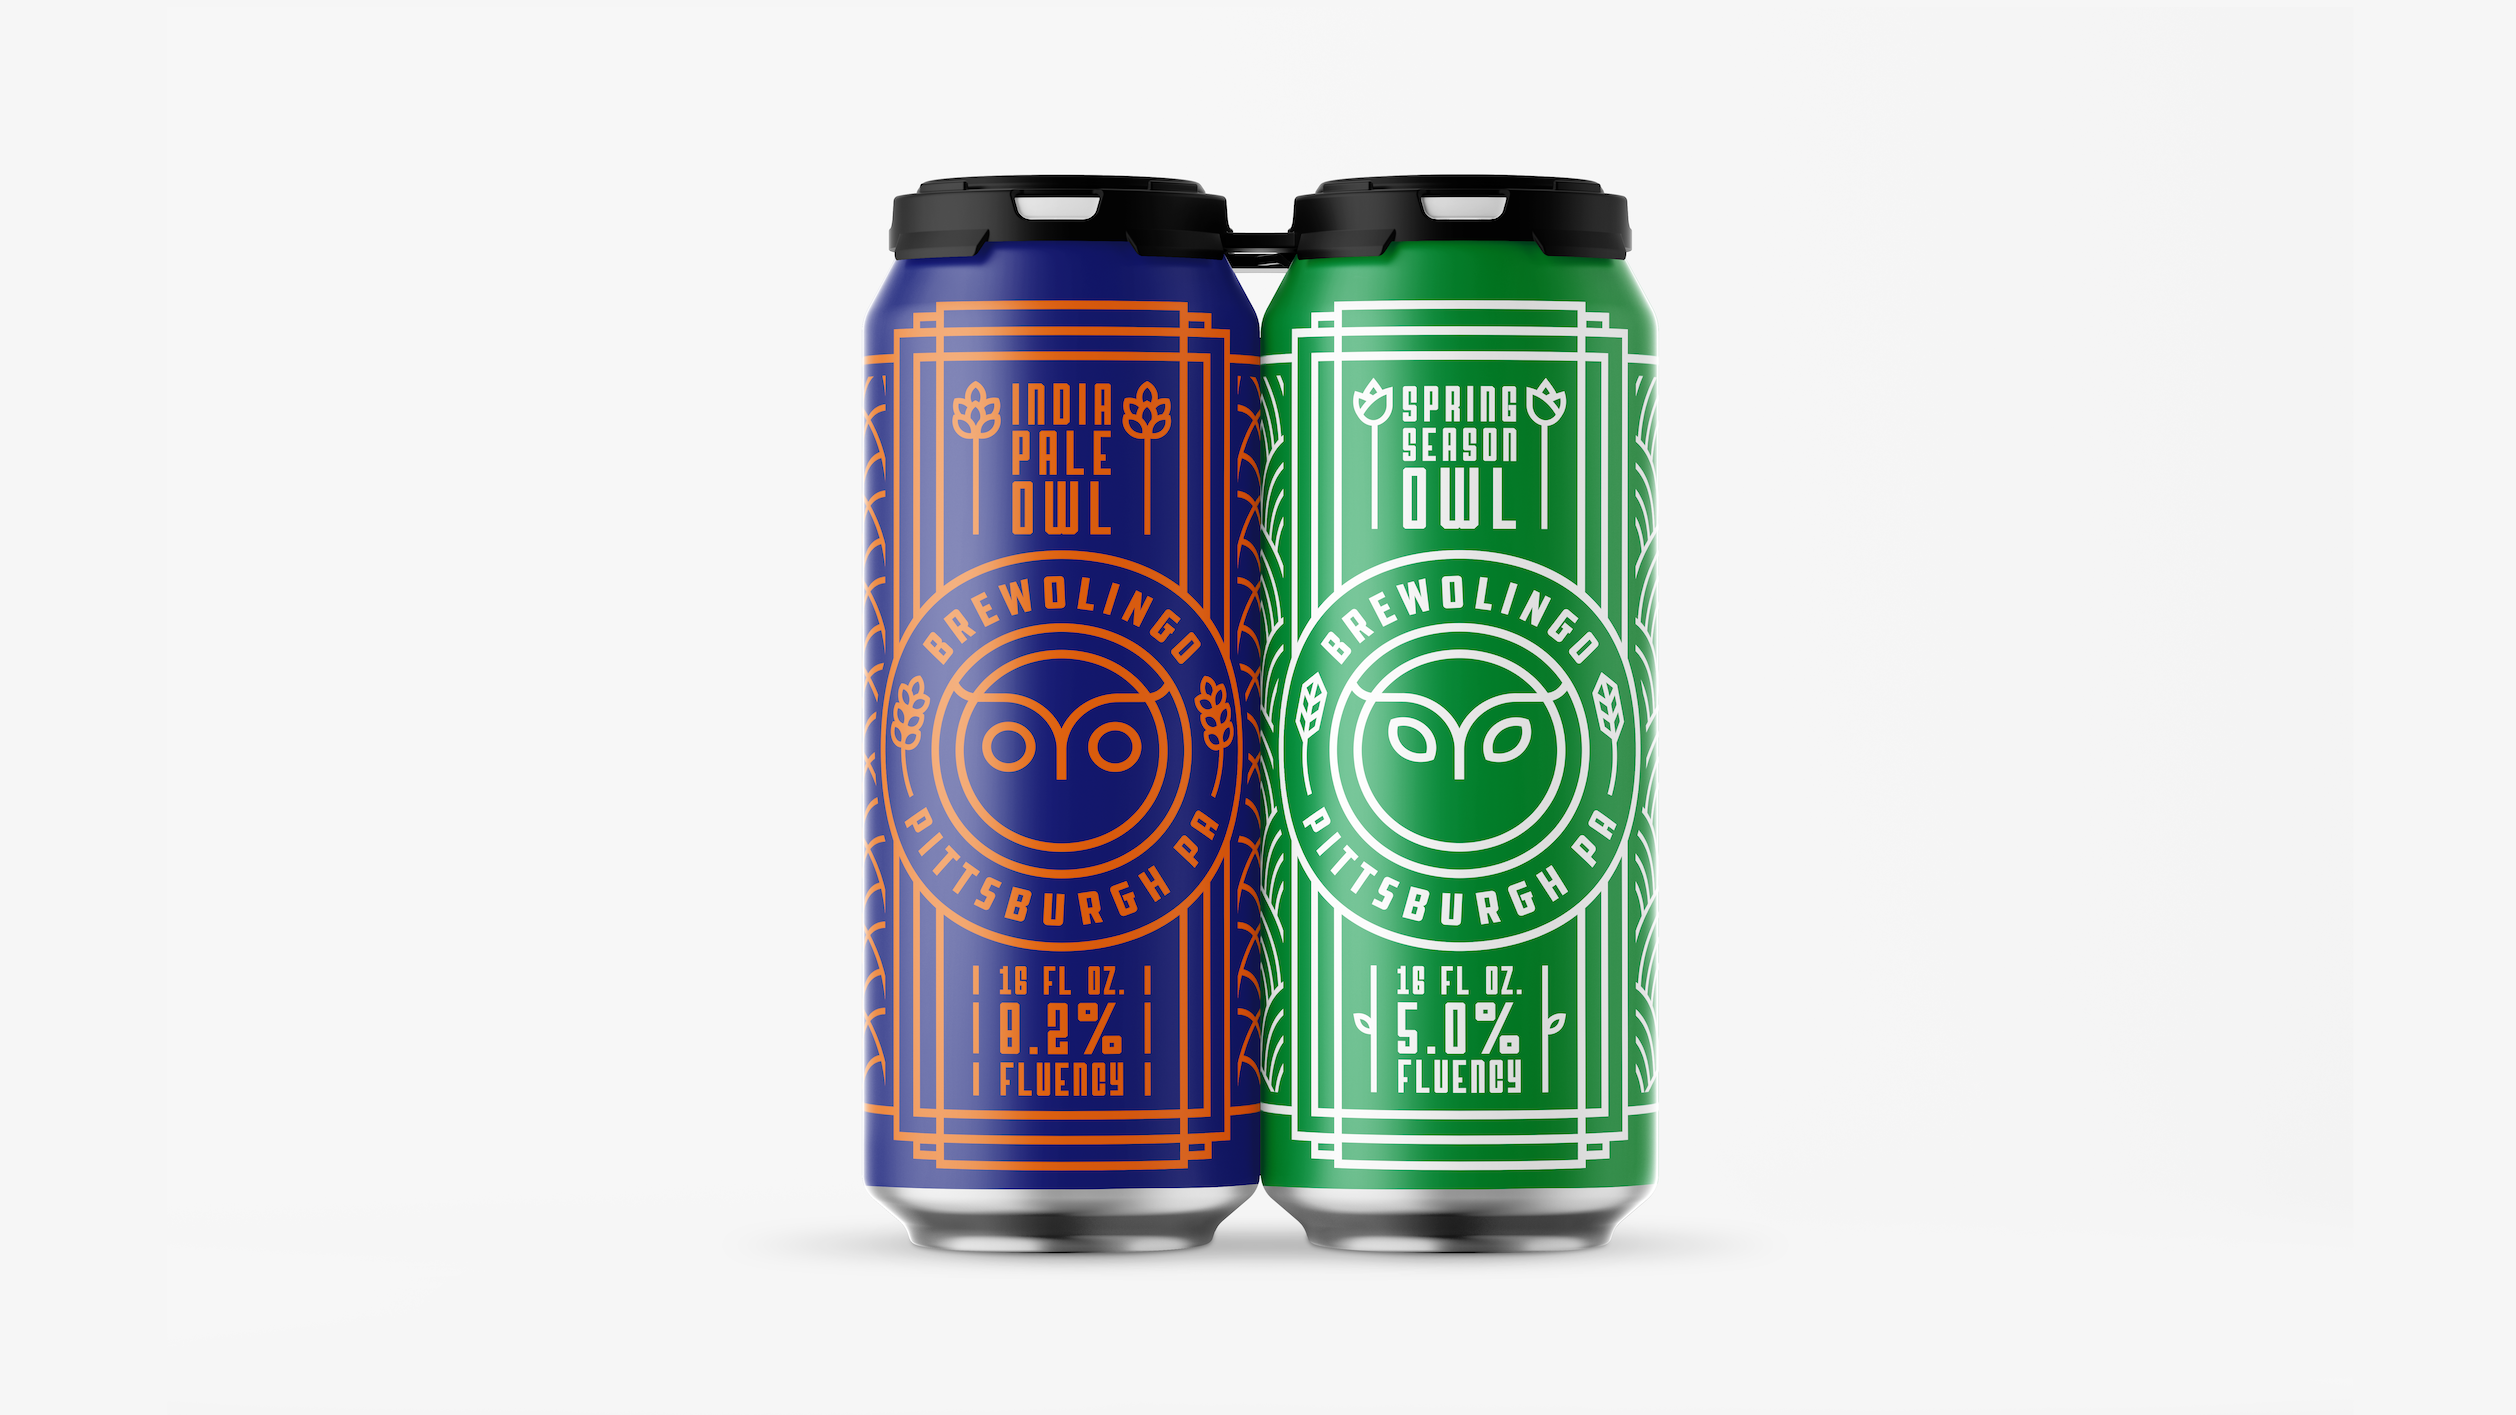 Brewolingo Four Pack Cans